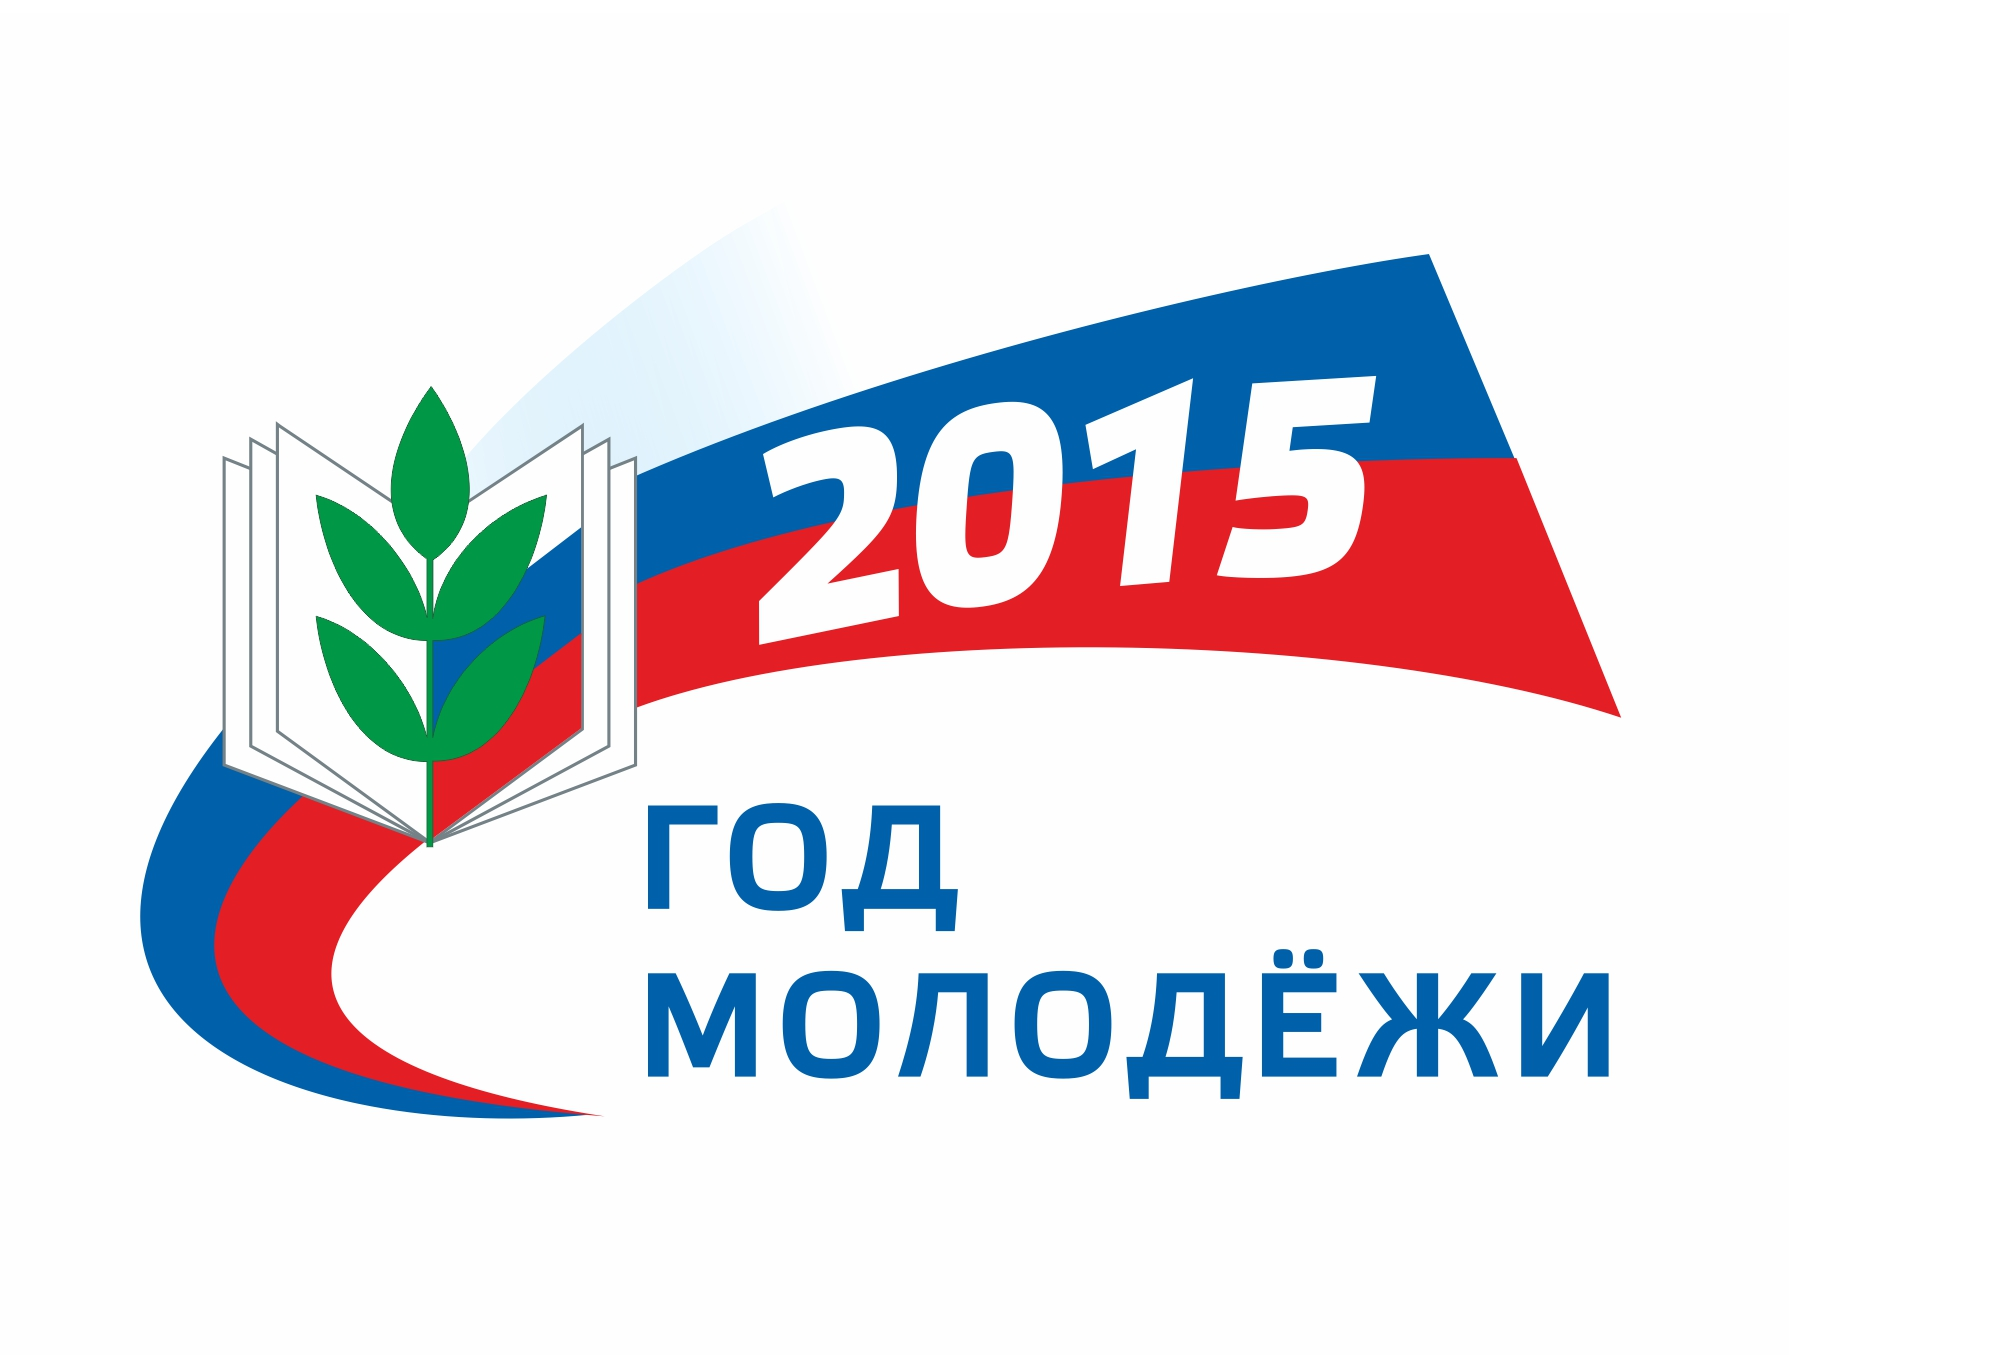 http://www.edunion.ru/images/YOUTH_2015_F